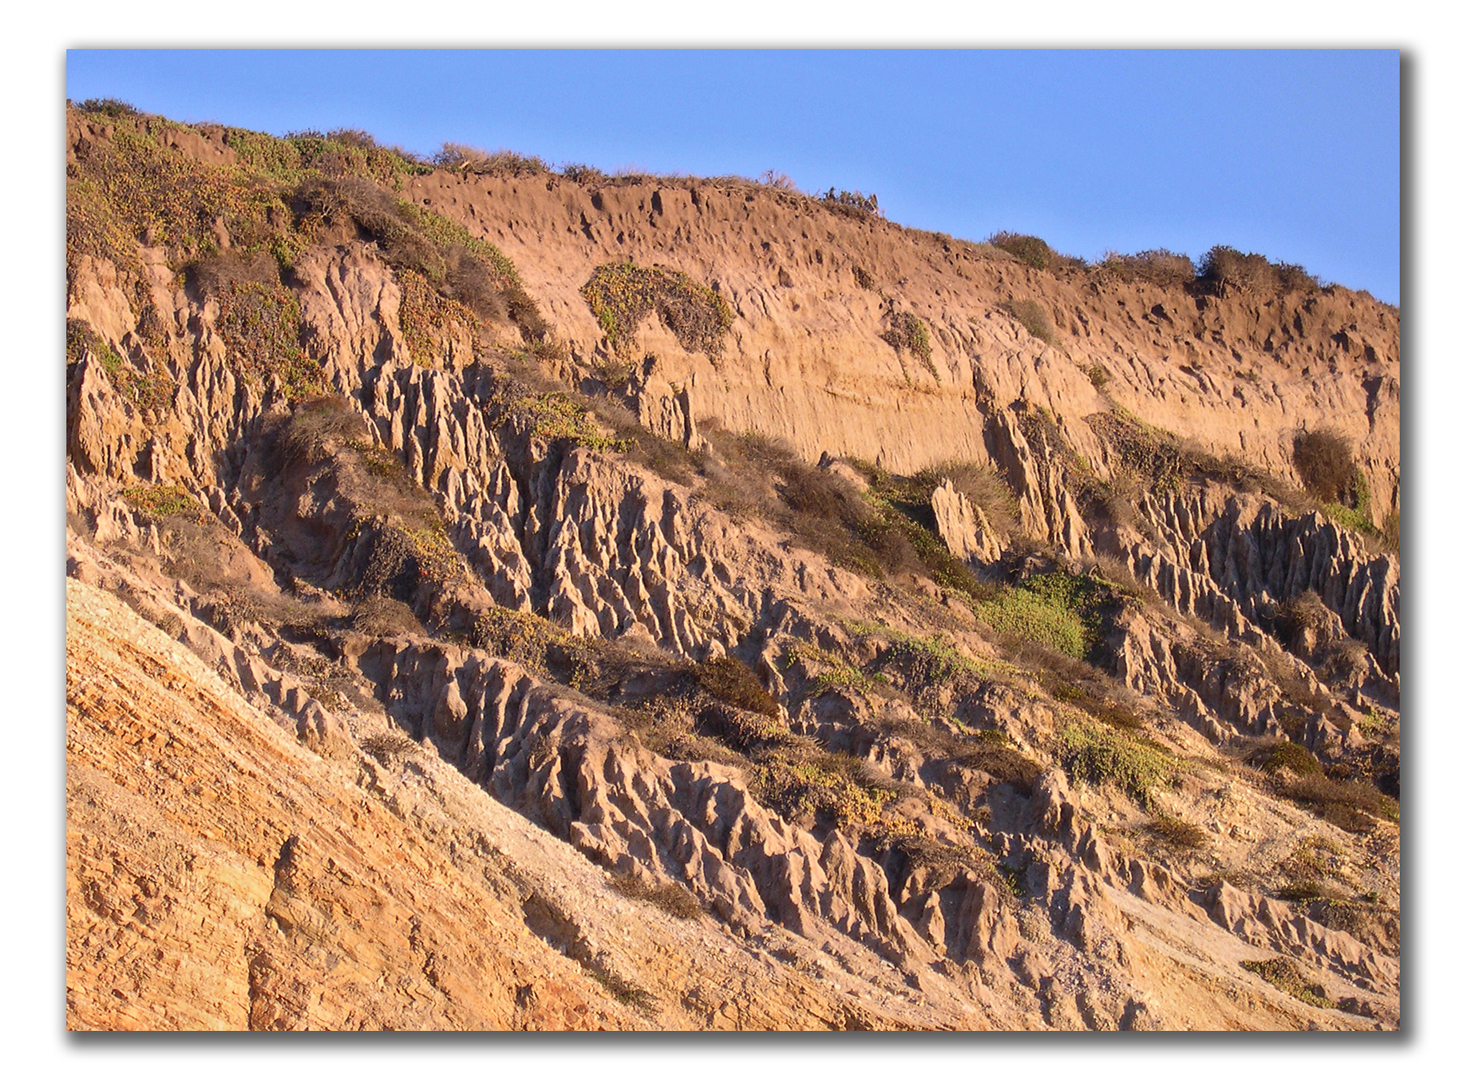 rain-eroded spires in sandy cliff